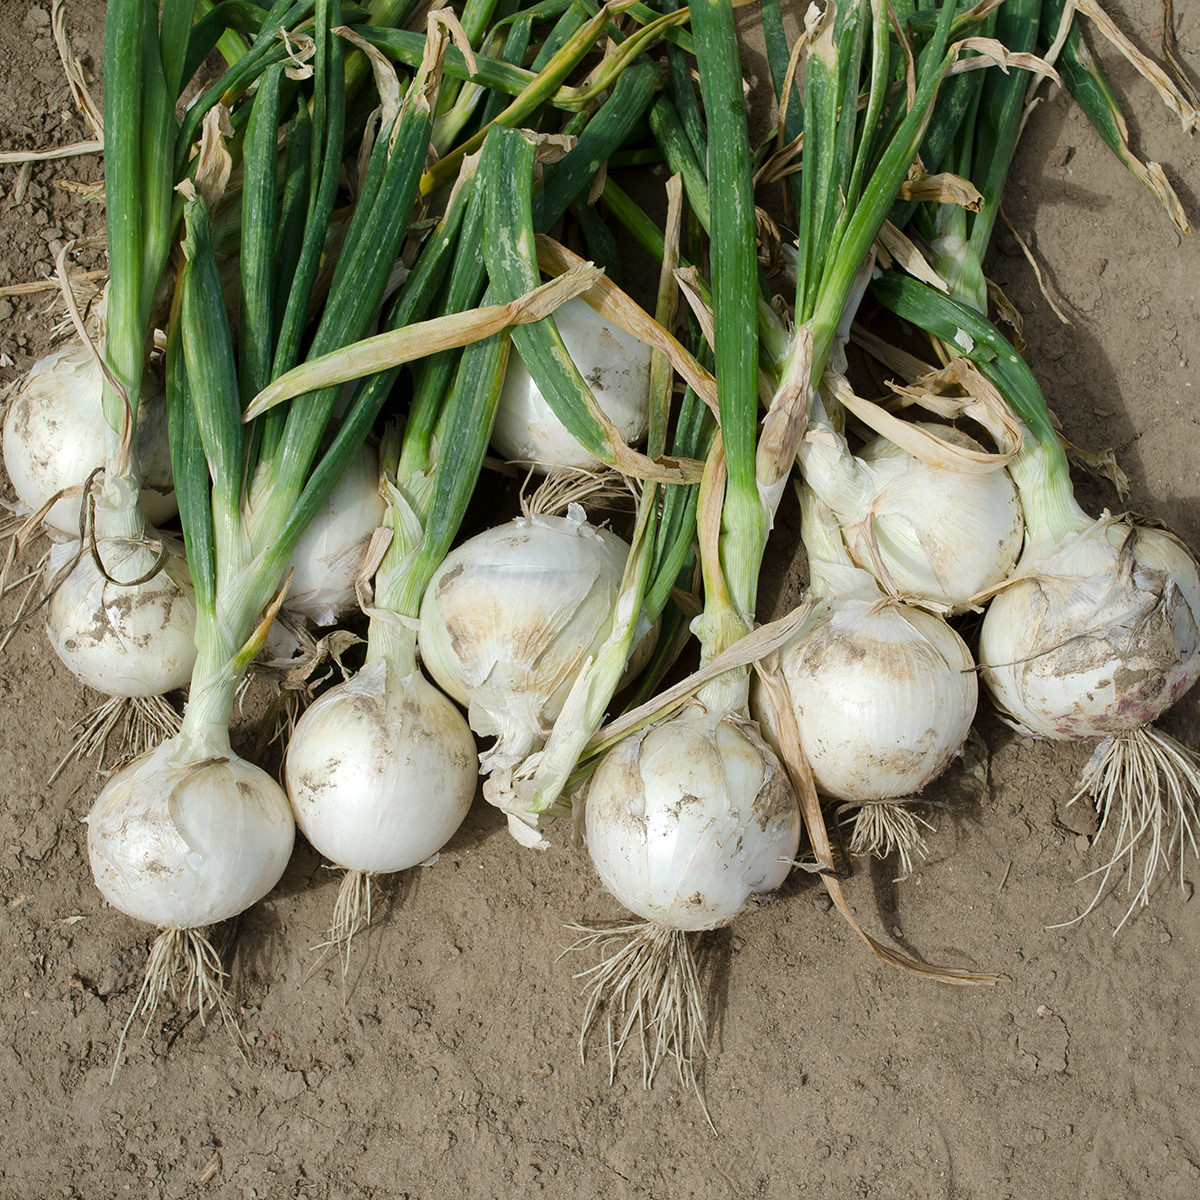 Onion Red Wethersfield    1,000 seeds  Need More Ask